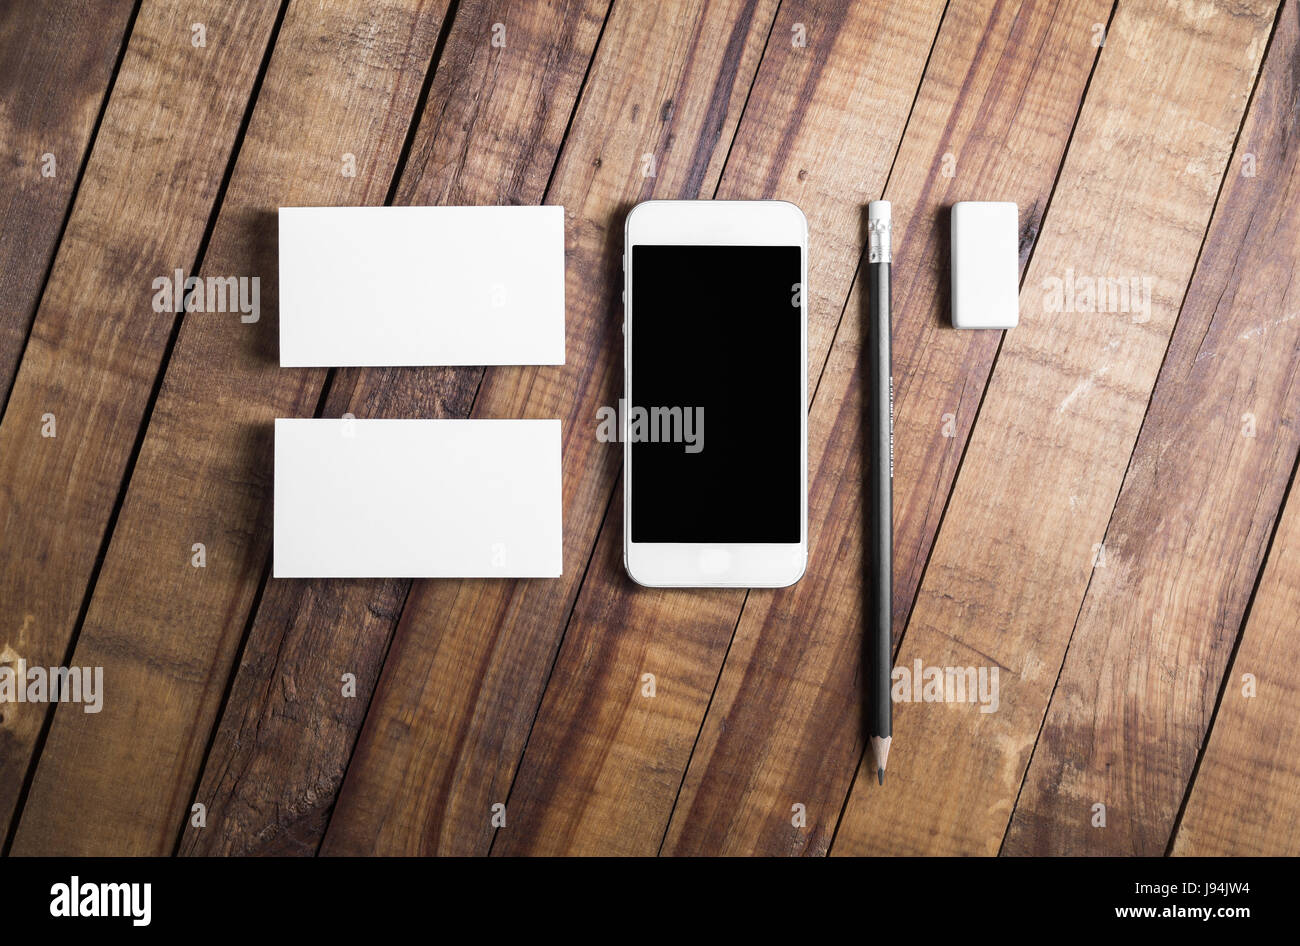 Photo Of Smartphone With Blank Screen Business Cards Pencil And Eraser On Wooden Table Background Mockup Brand Template St